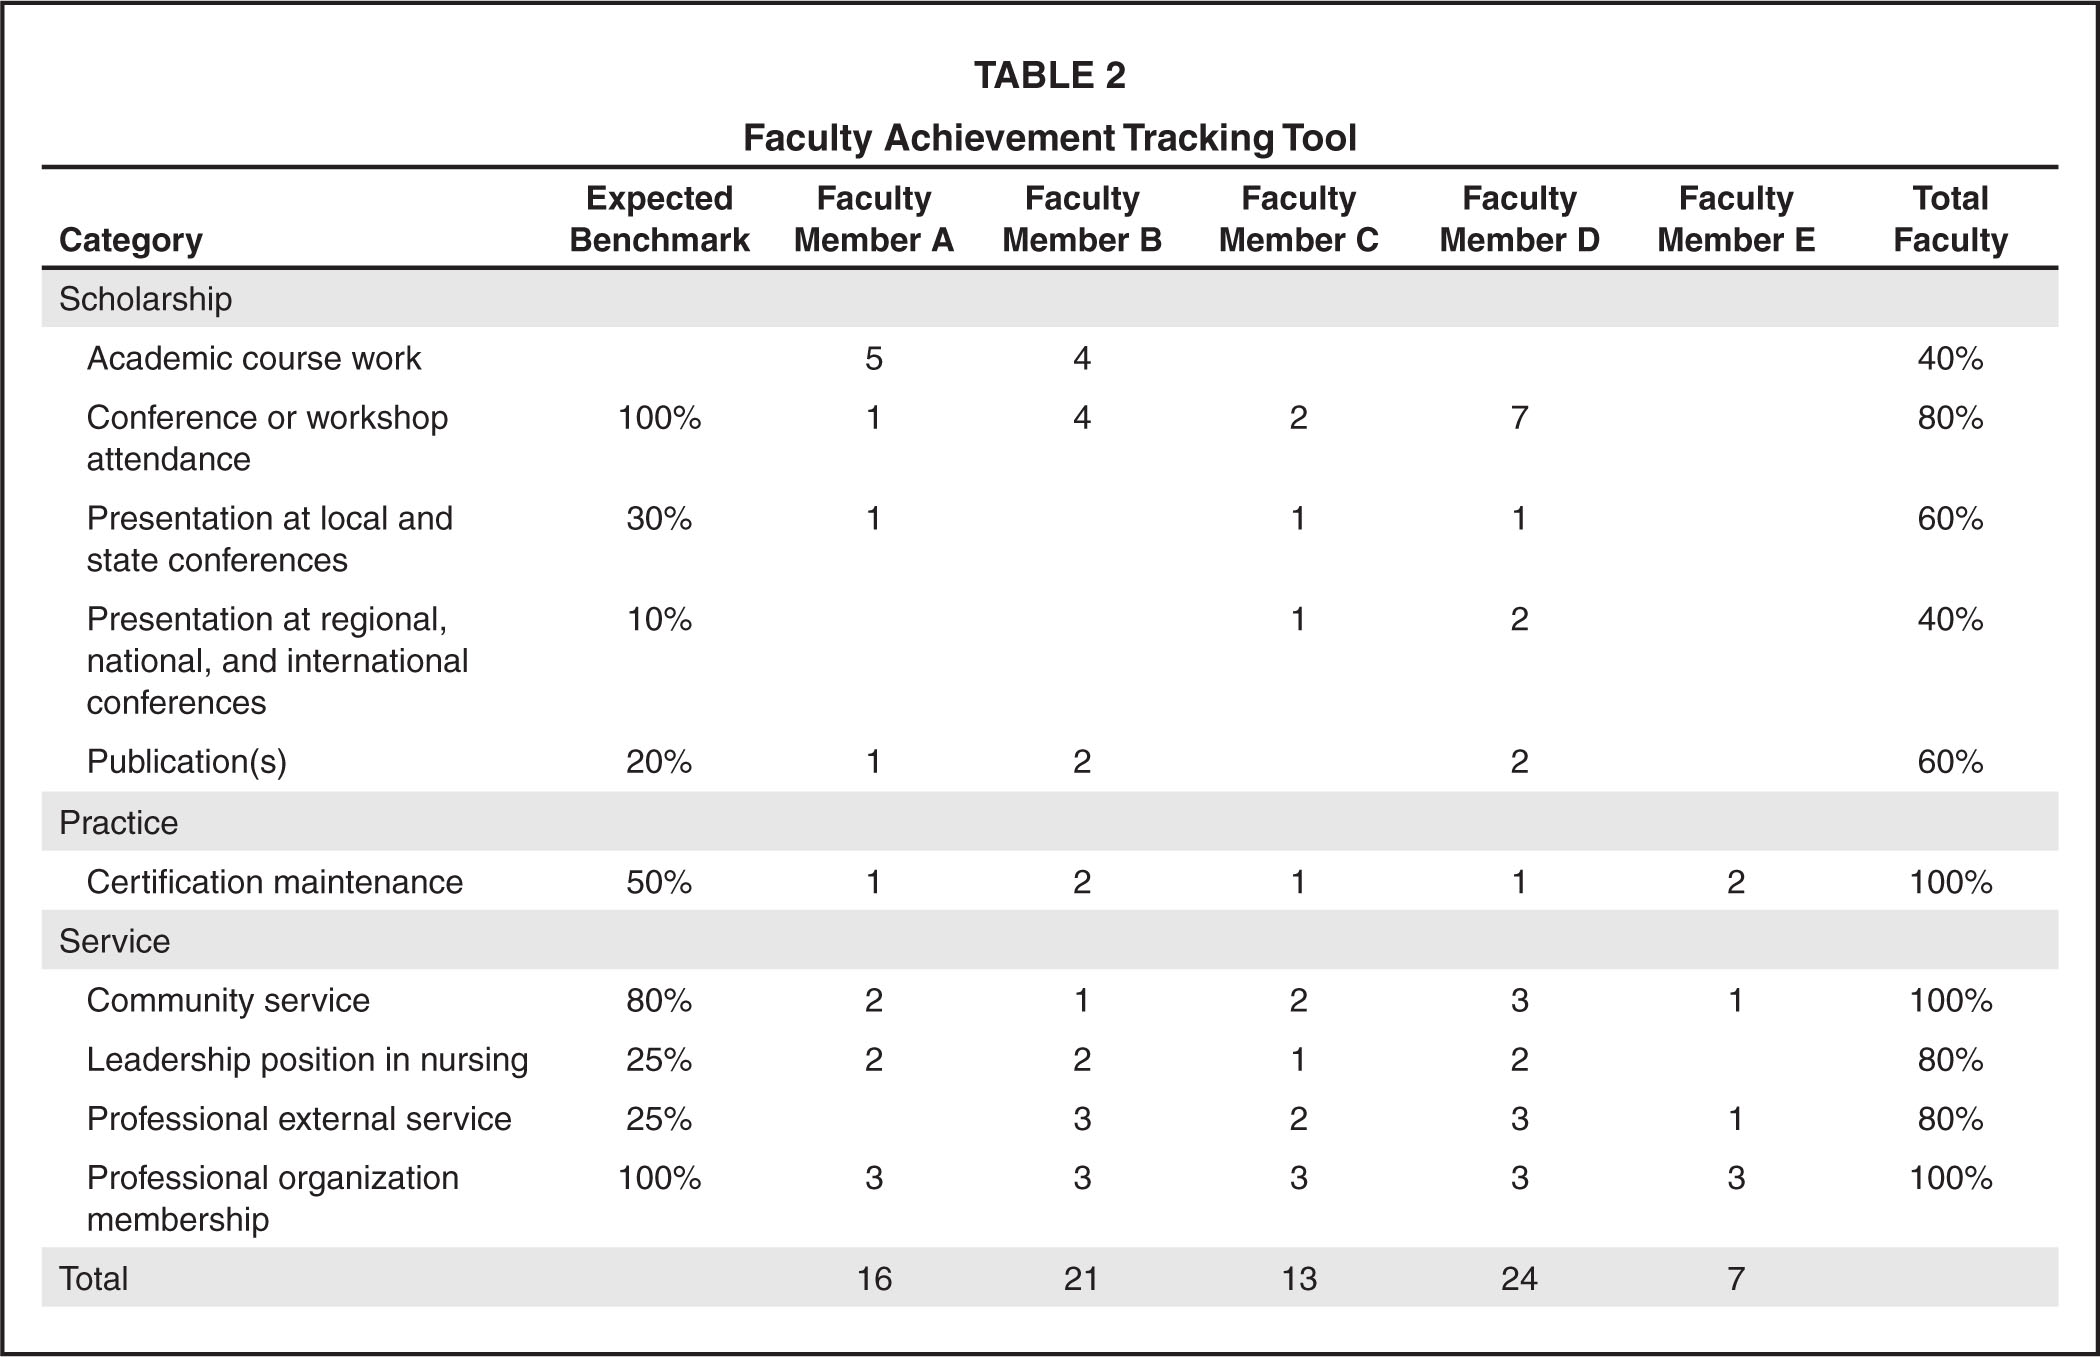 Faculty Achievement Tracking Tool